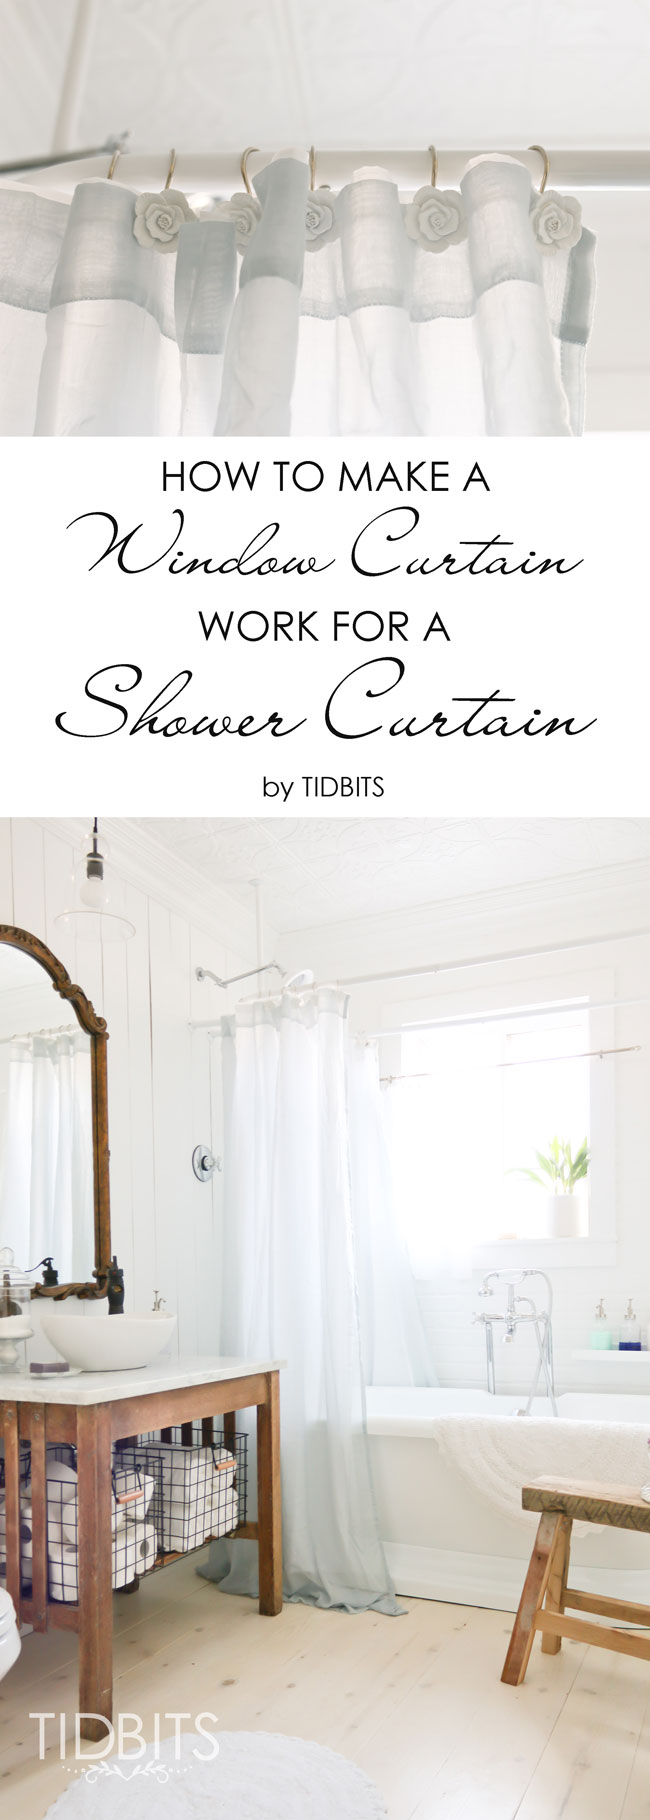 how to make a window curtain work for a shower curtain tidbits how to make a window curtain work for a shower curtain don t limit